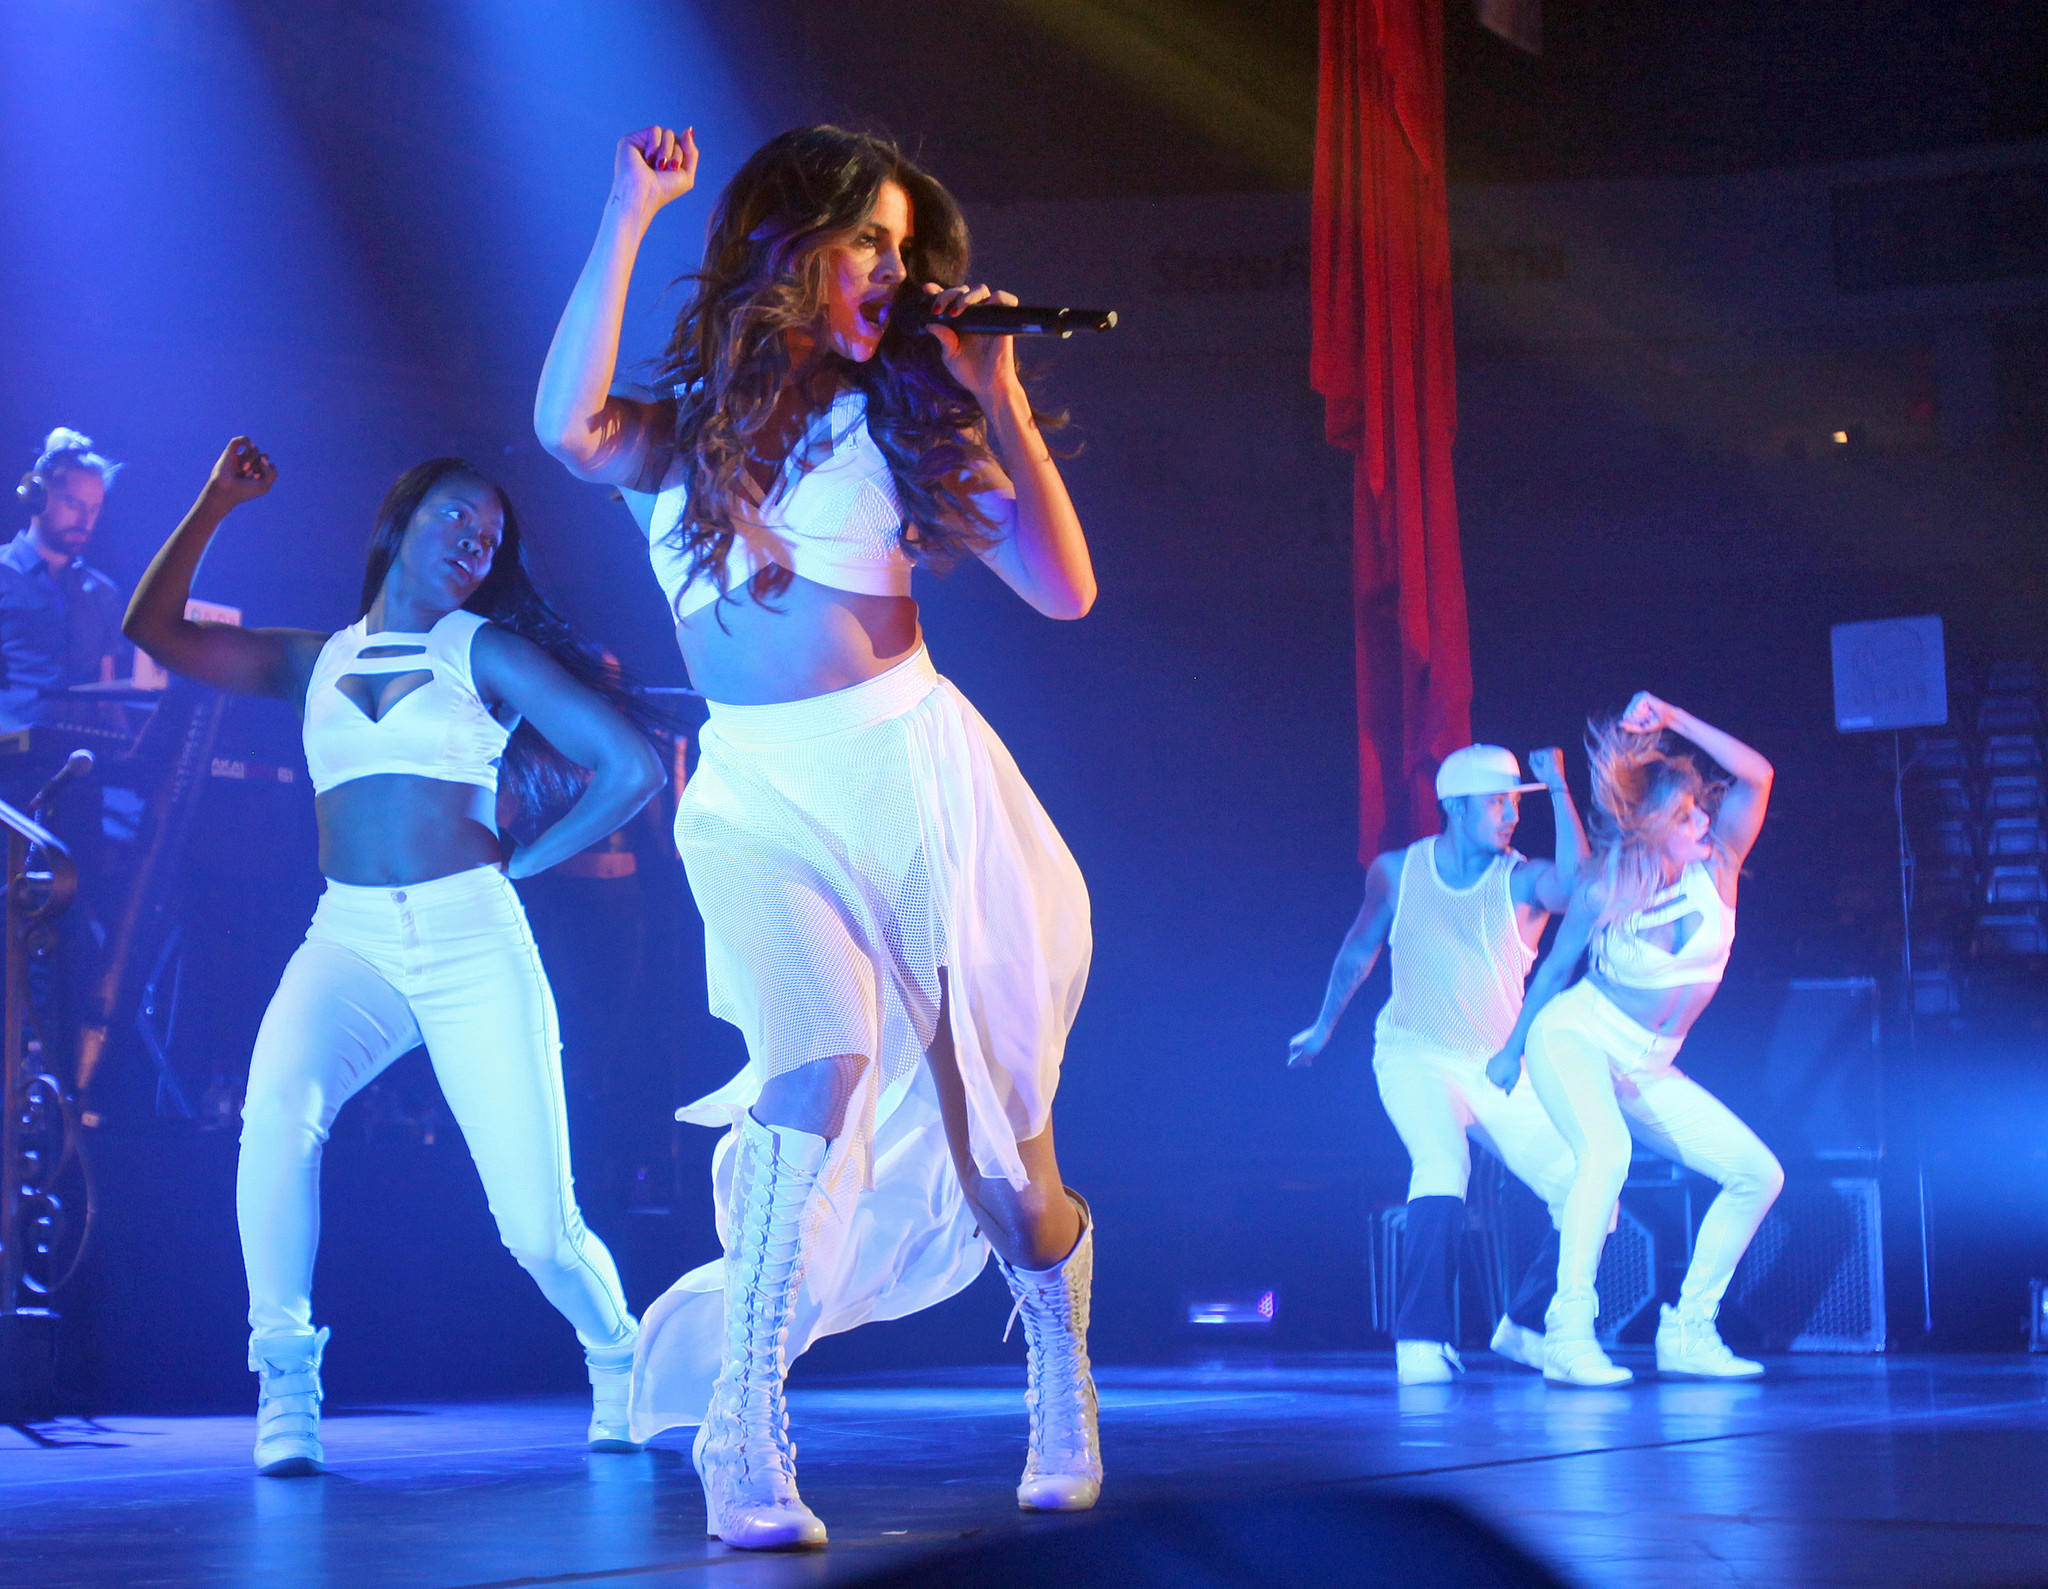 Selena Gomez performs at Borderfest in Texas last month. A man has been convicted of trespassing on a Calabasas property the singer owns.